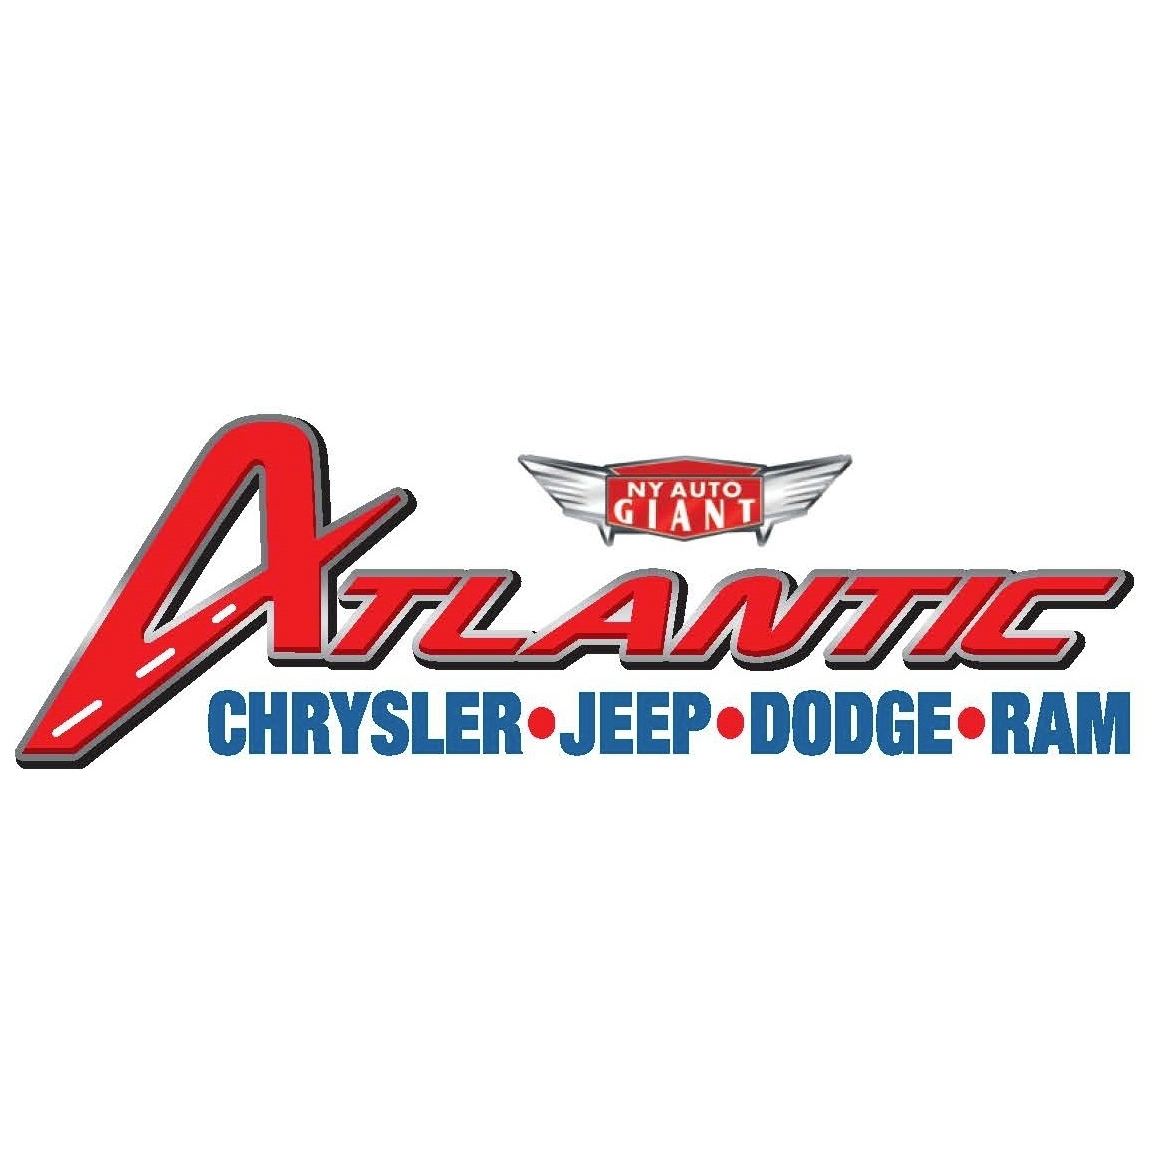 Atlantic chrysler dodge jeep ram - Hotels Nearby